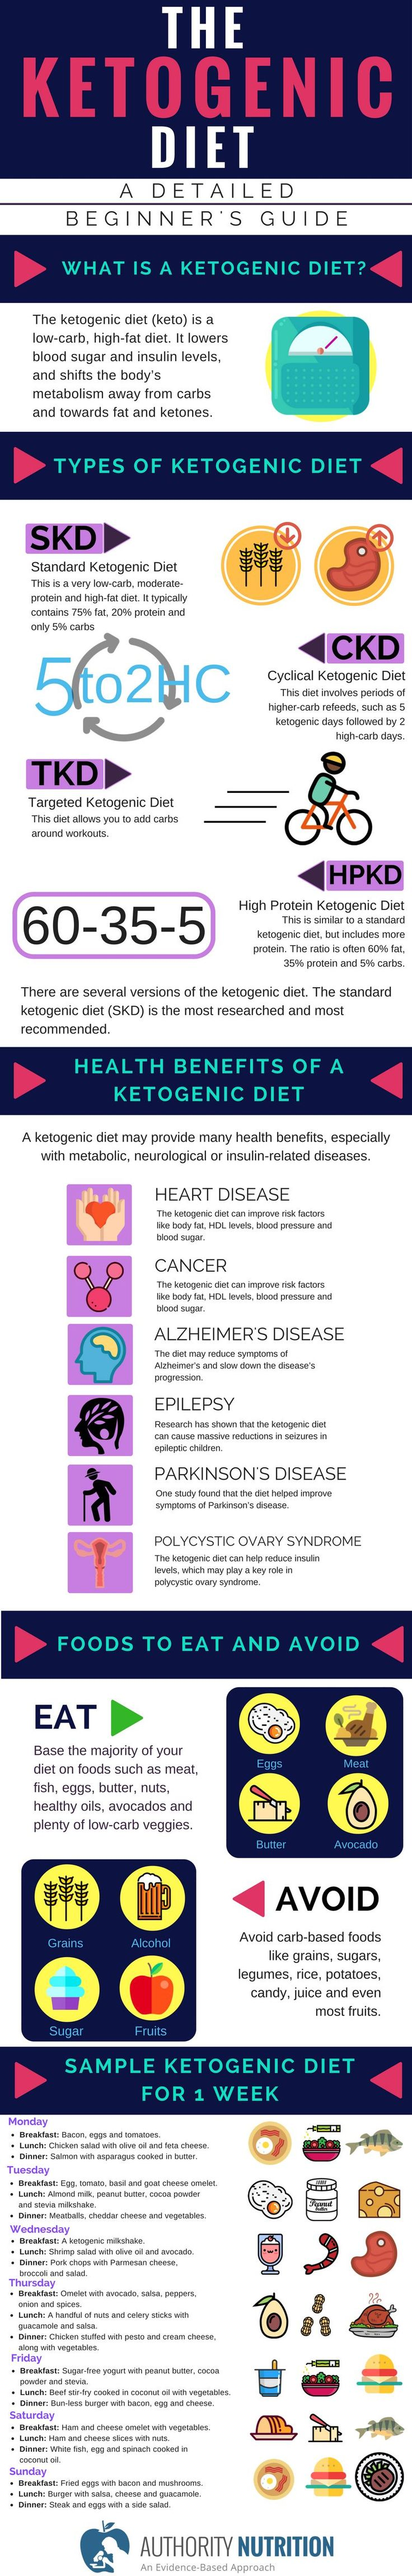 The ketogenic diet is a low-carb, high-fat diet that offers many health benefits. Over 20 studies show that this type of diet can help you lose weight and improve health. Ketogenic diets may even have benefits against diabetes, cancer, epilepsy and Alzheimer's disease. Learn more here: https://authoritynutrition.com/ketogenic-diet-101/ There's a simple reason why most diets fail-- they do not produce results fast enough. It's no fun to eat small portions of food that don't satisfy our hunger…